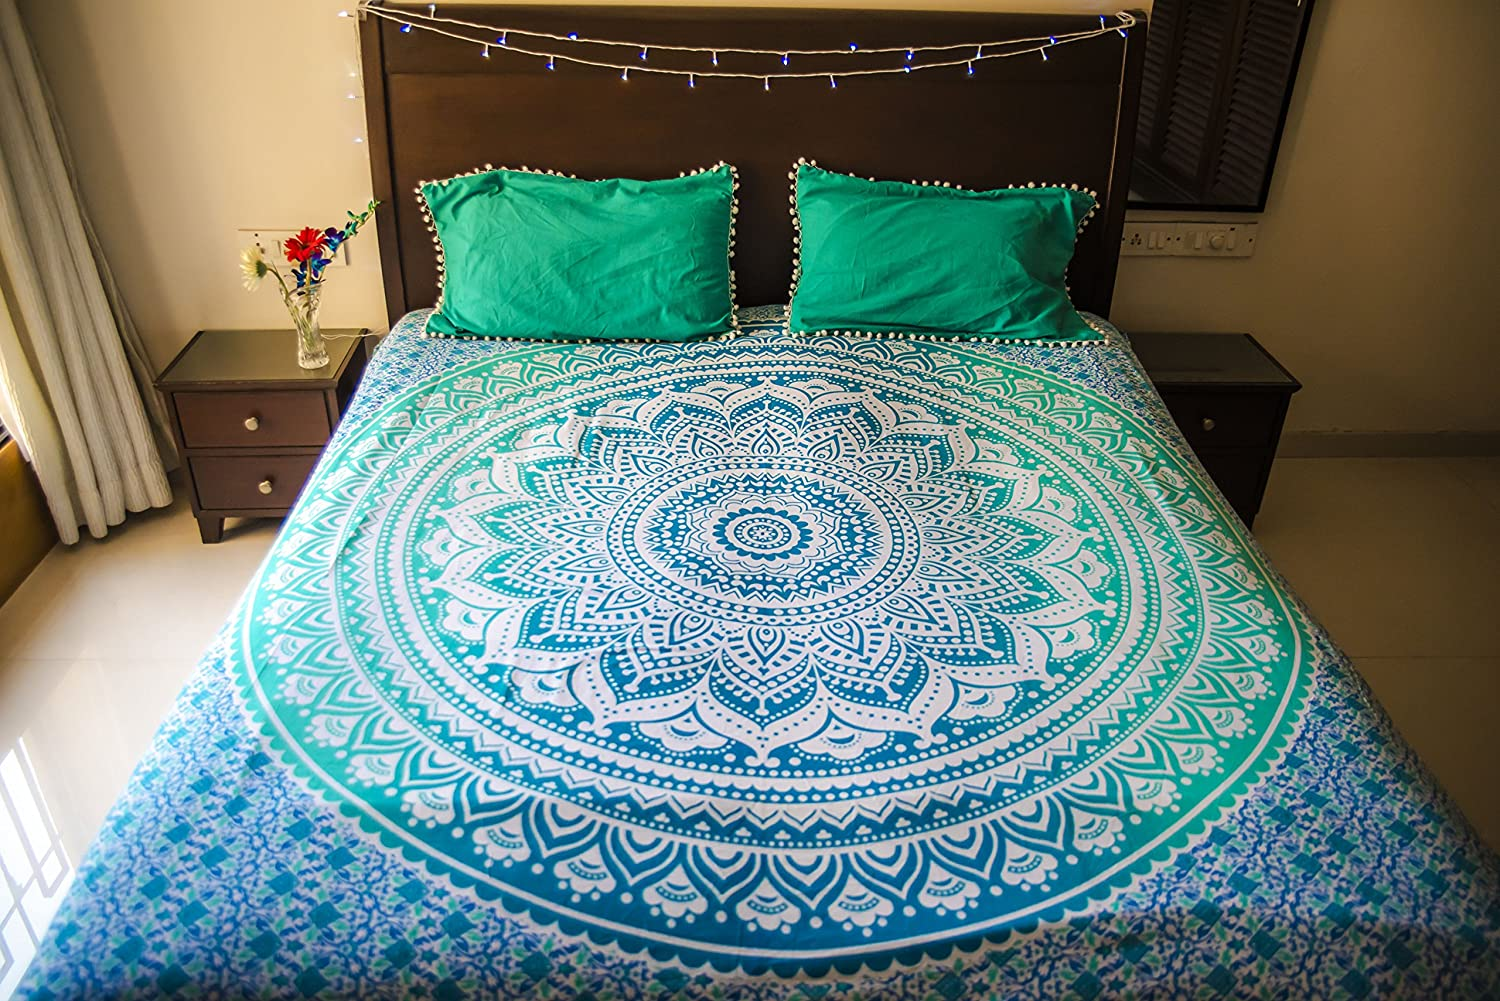 Indian Mandala Tapestry Decor Wall Hanging Hippie Throw Bohemian Ombre Bedspread